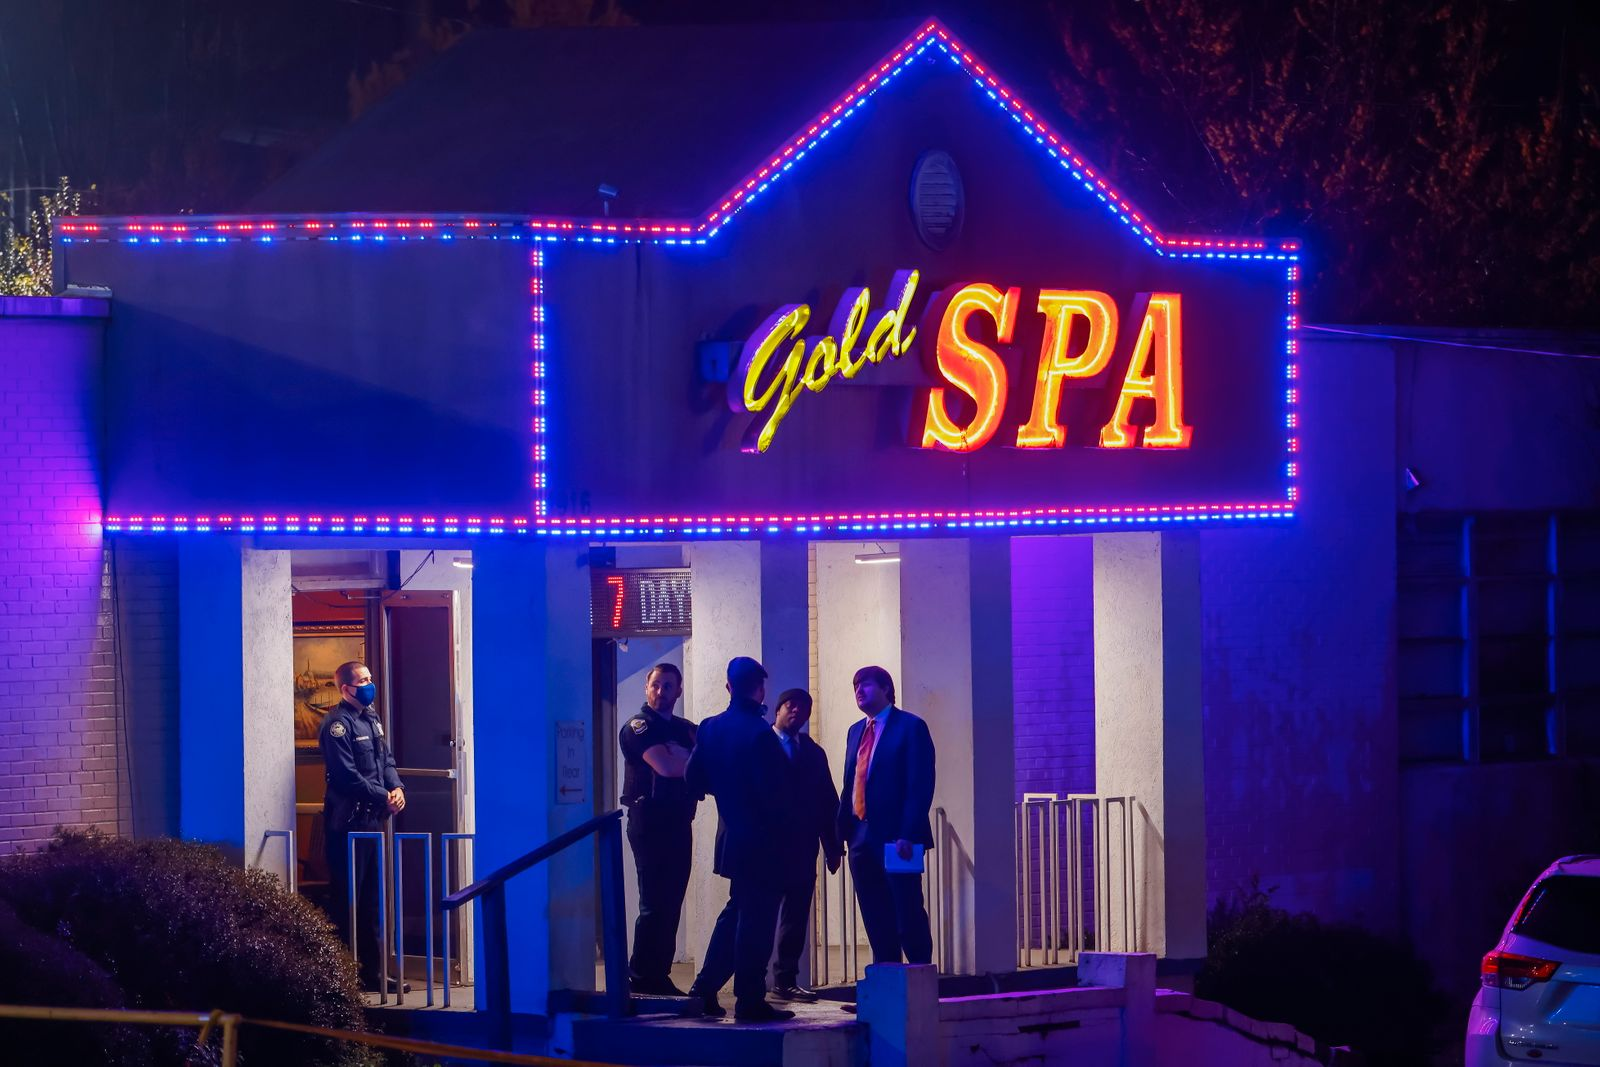 At least eight killed in multiple shootings at Asian massage spas in Atlanta area